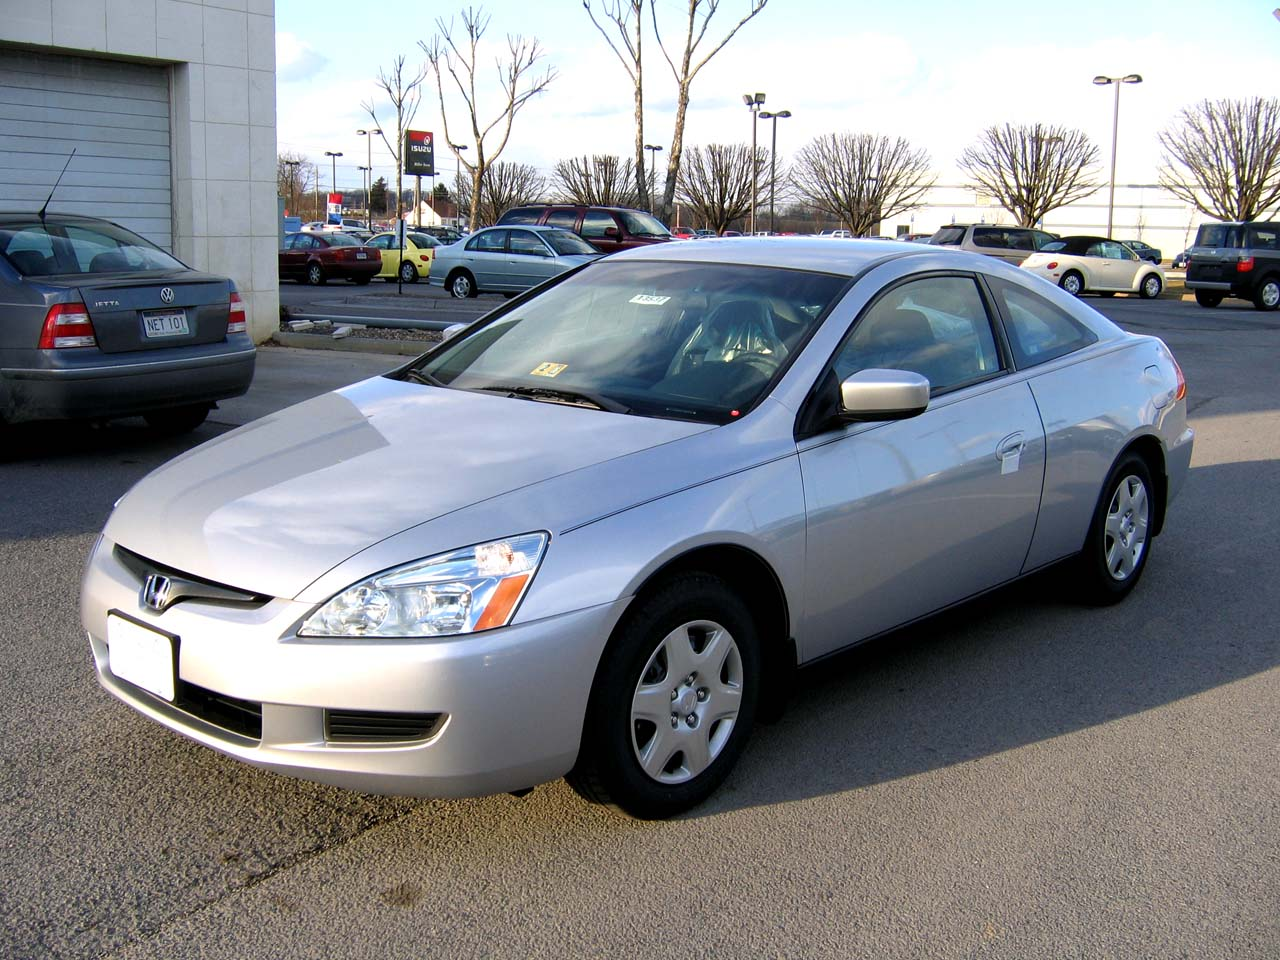 2005 Accord Lx Coupe